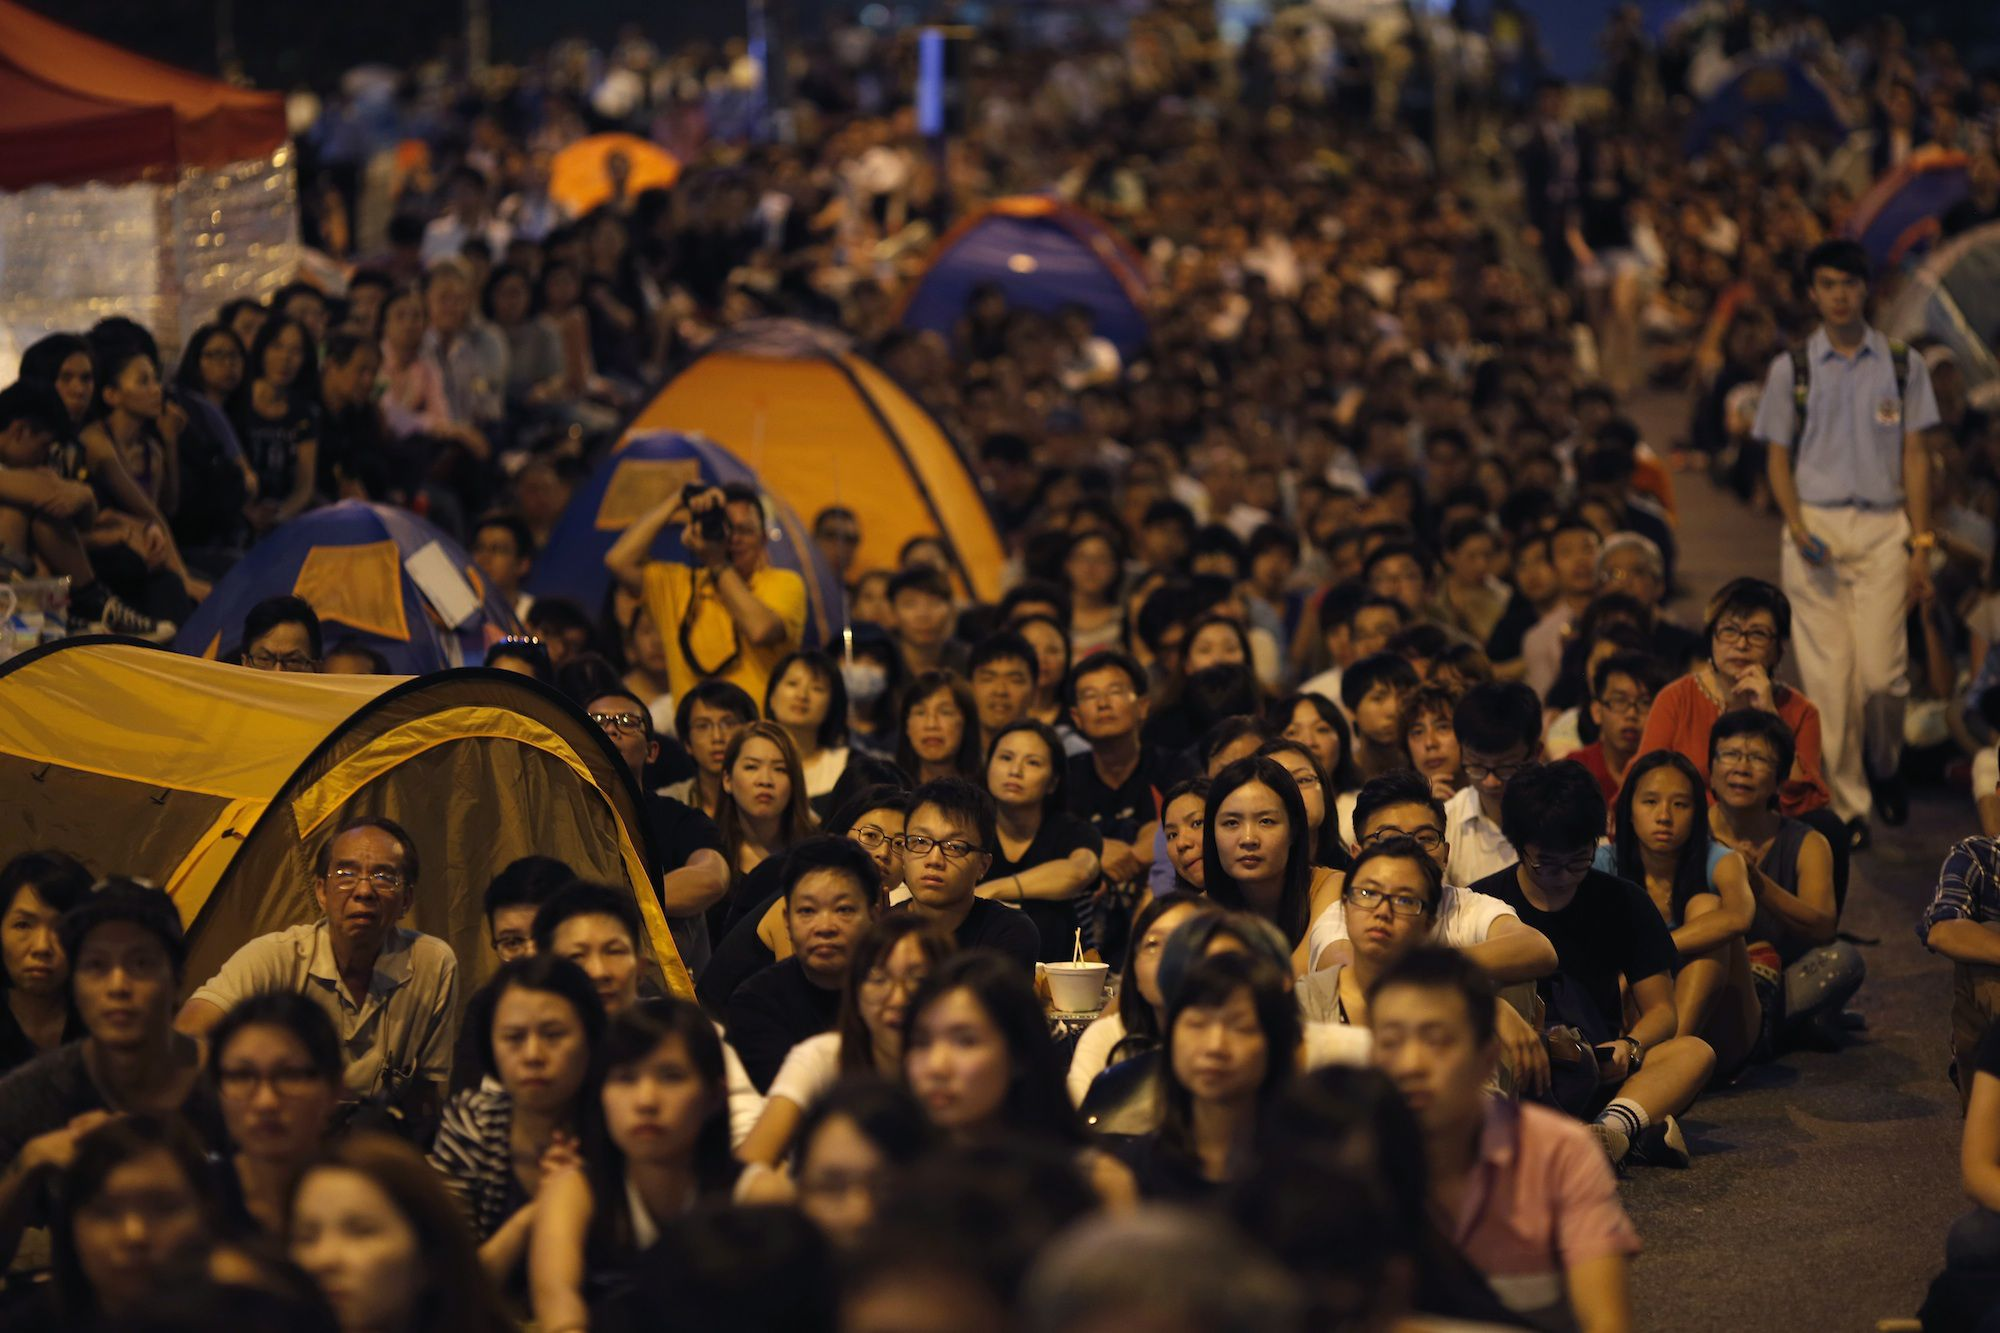 """Pro-democracy protestors watch formal talks between student protest leaders and city officials on a video screen near the government headquarters in Hong Kong October 21, 2014. Hong Kong Chief Executive Leung Chun-ying said on Tuesday there was room for the committee that selects candidates for the territory's 2017 election to be made """"more democratic."""" REUTERS/Carlos Barria (CHINA - Tags: POLITICS CIVIL UNREST BUSINESS) - RTR4AYKF"""